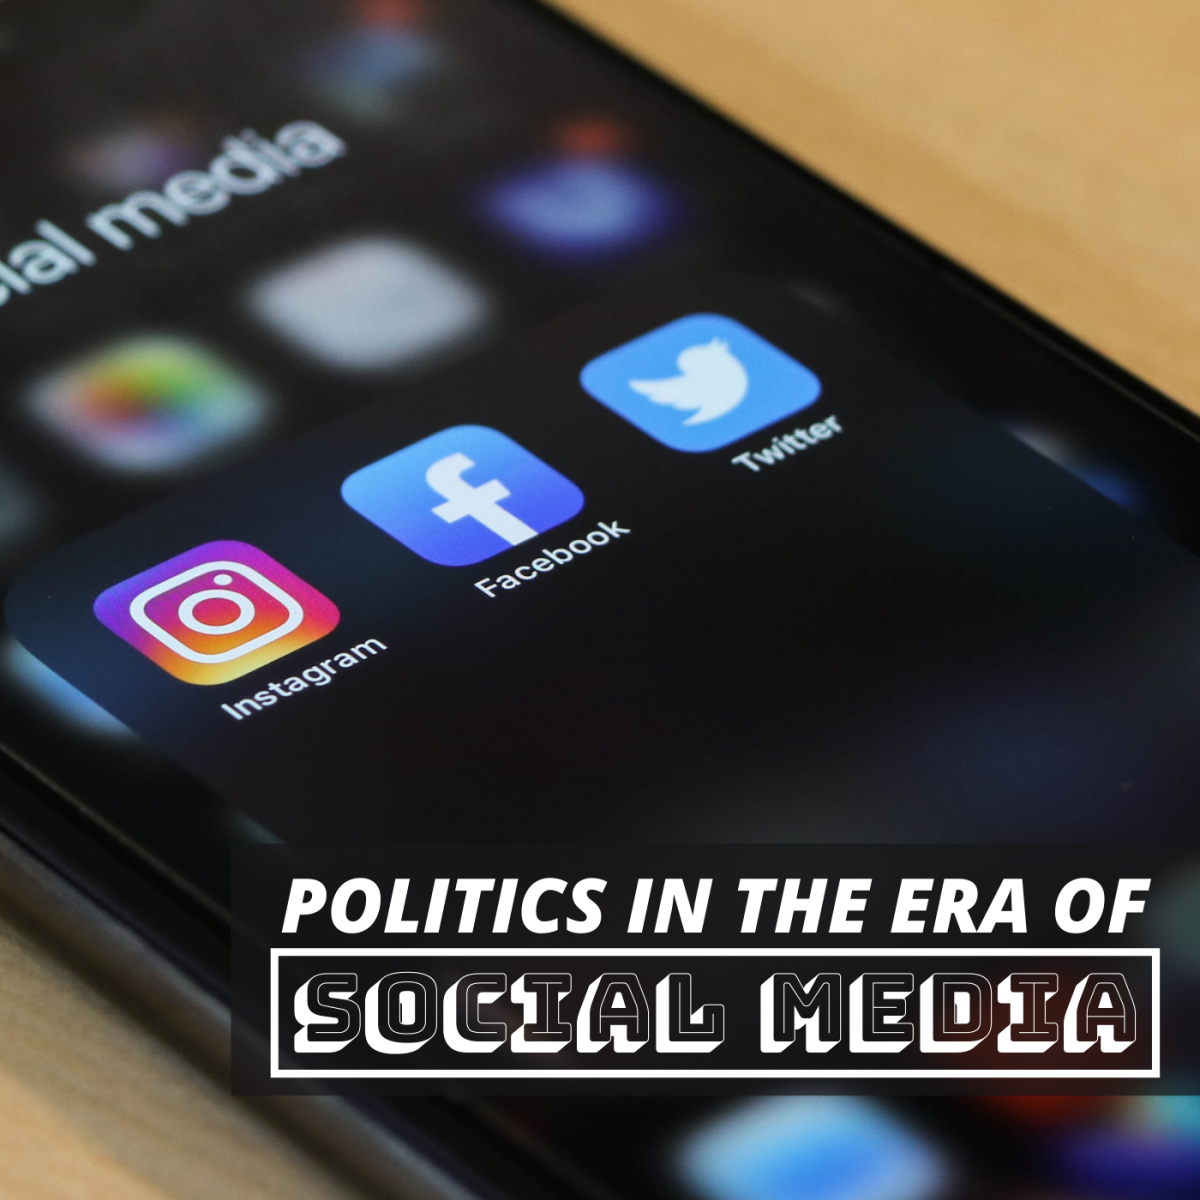 Does social media influence the vote?